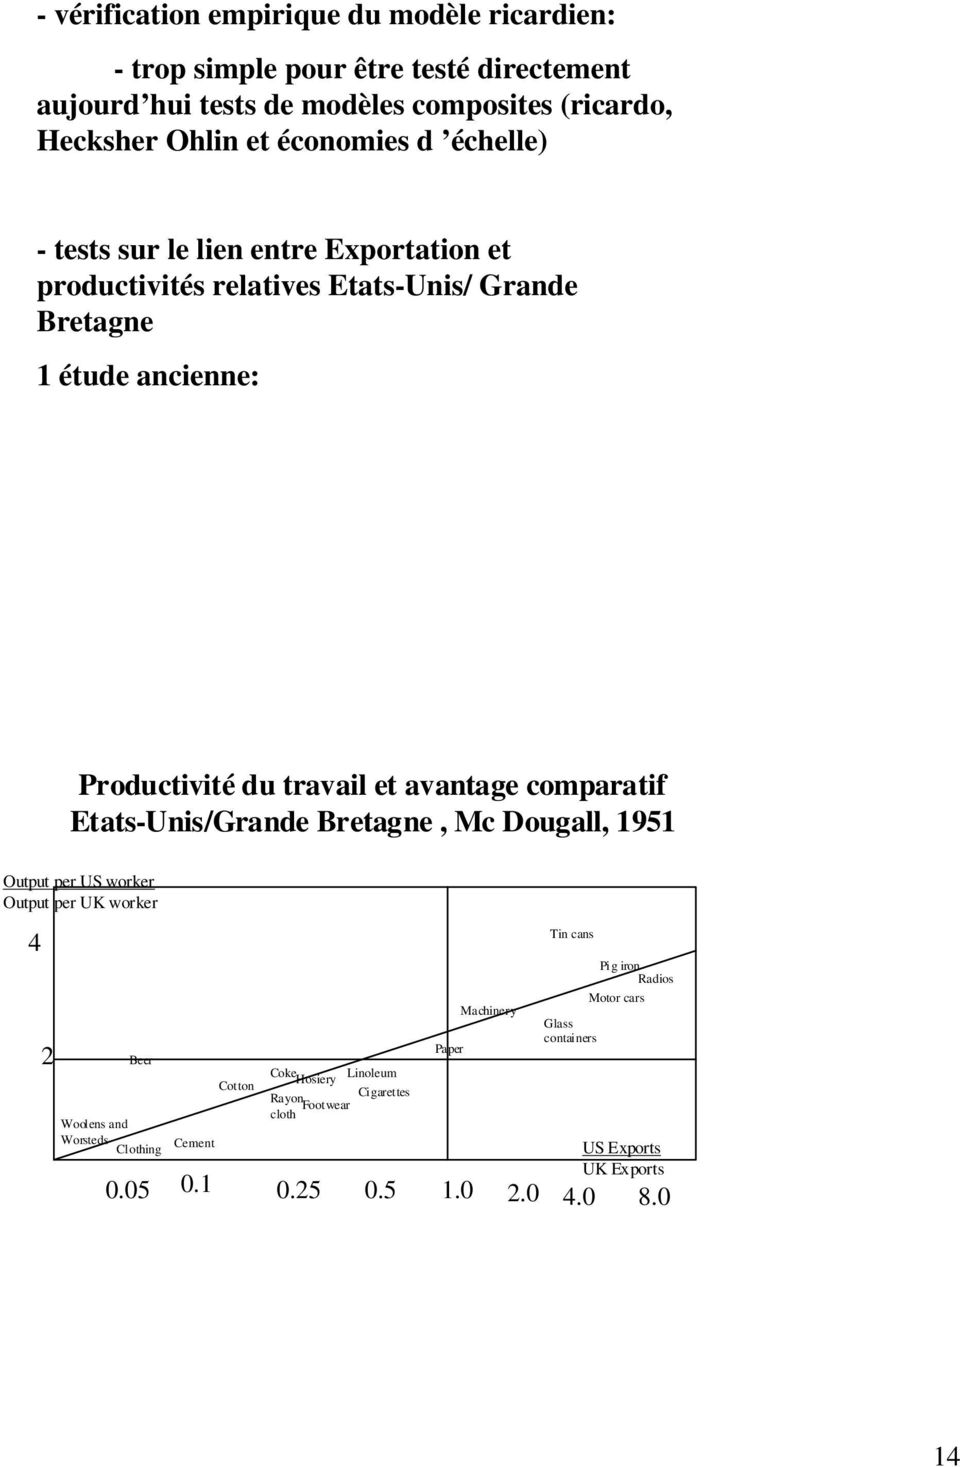 avantage comparatif Etats-Unis/Grande Bretagne, Mc Dougall, 1951 Output per US worker Output per UK worker 4 2 Beer Woolens and Worsteds Clothing Cement Cotton Coke